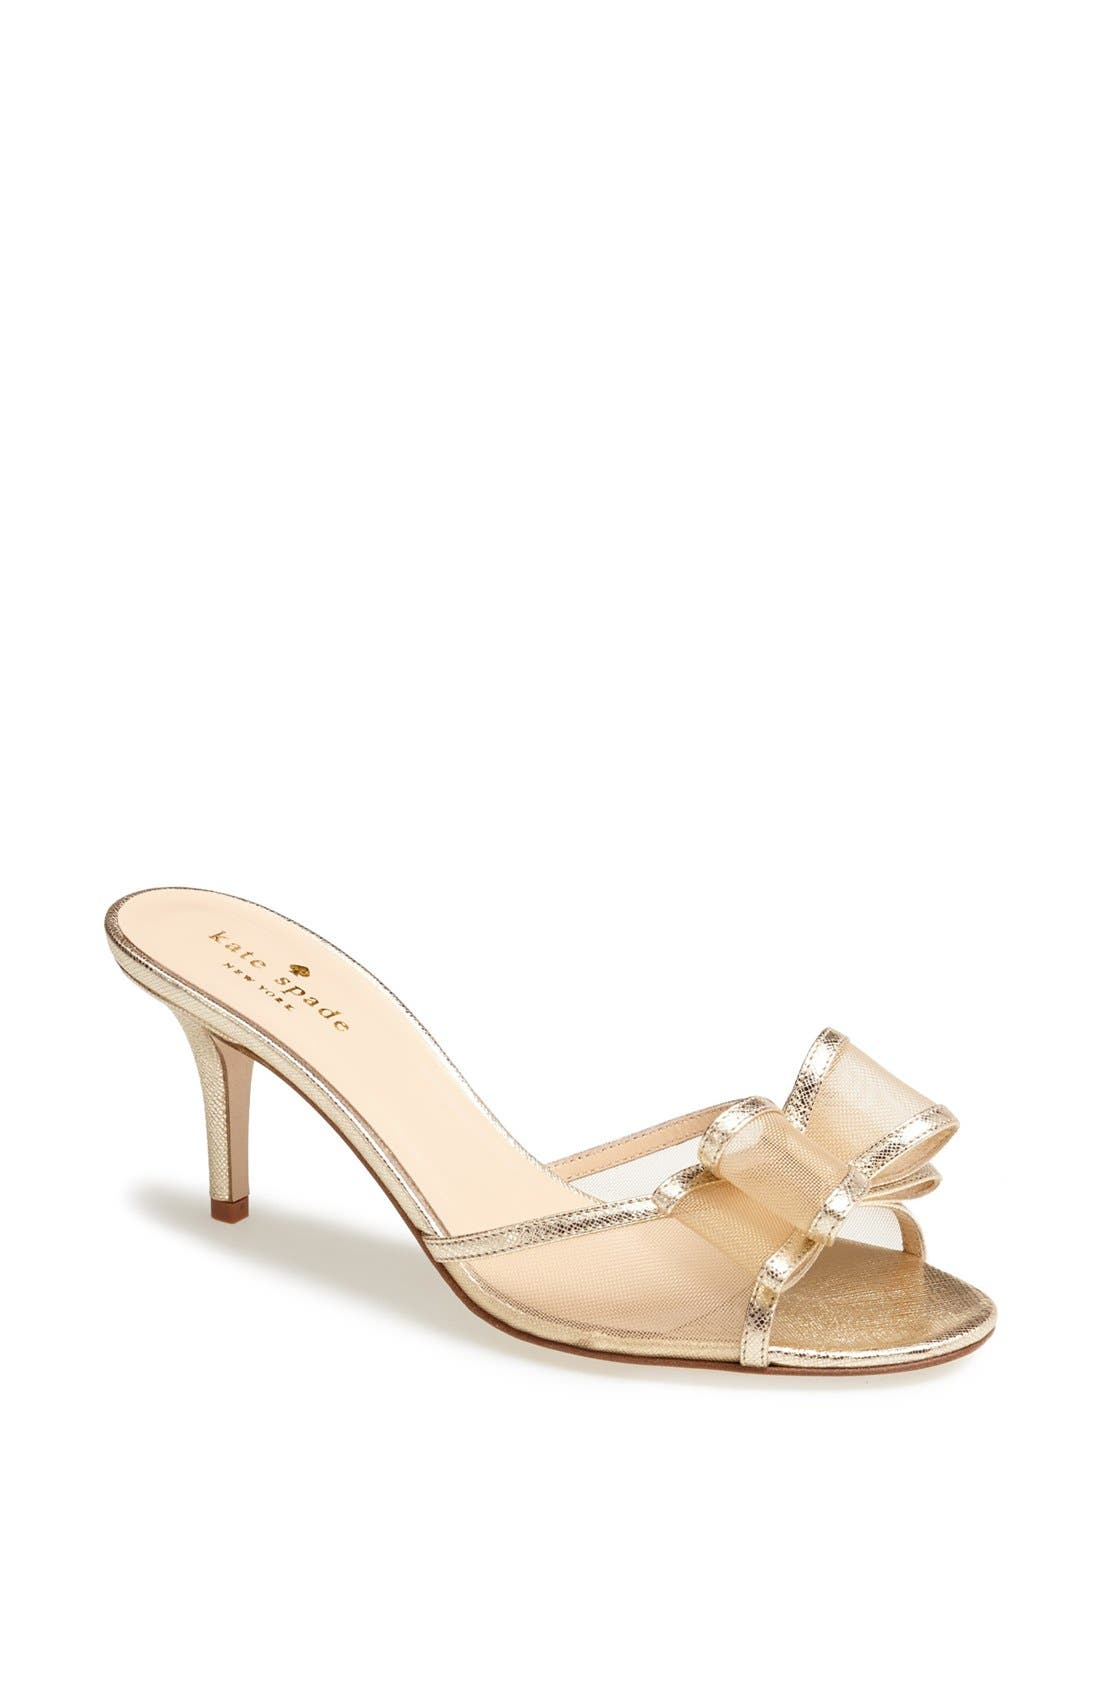 Alternate Image 1 Selected - kate spade new york 'michaela' sandal